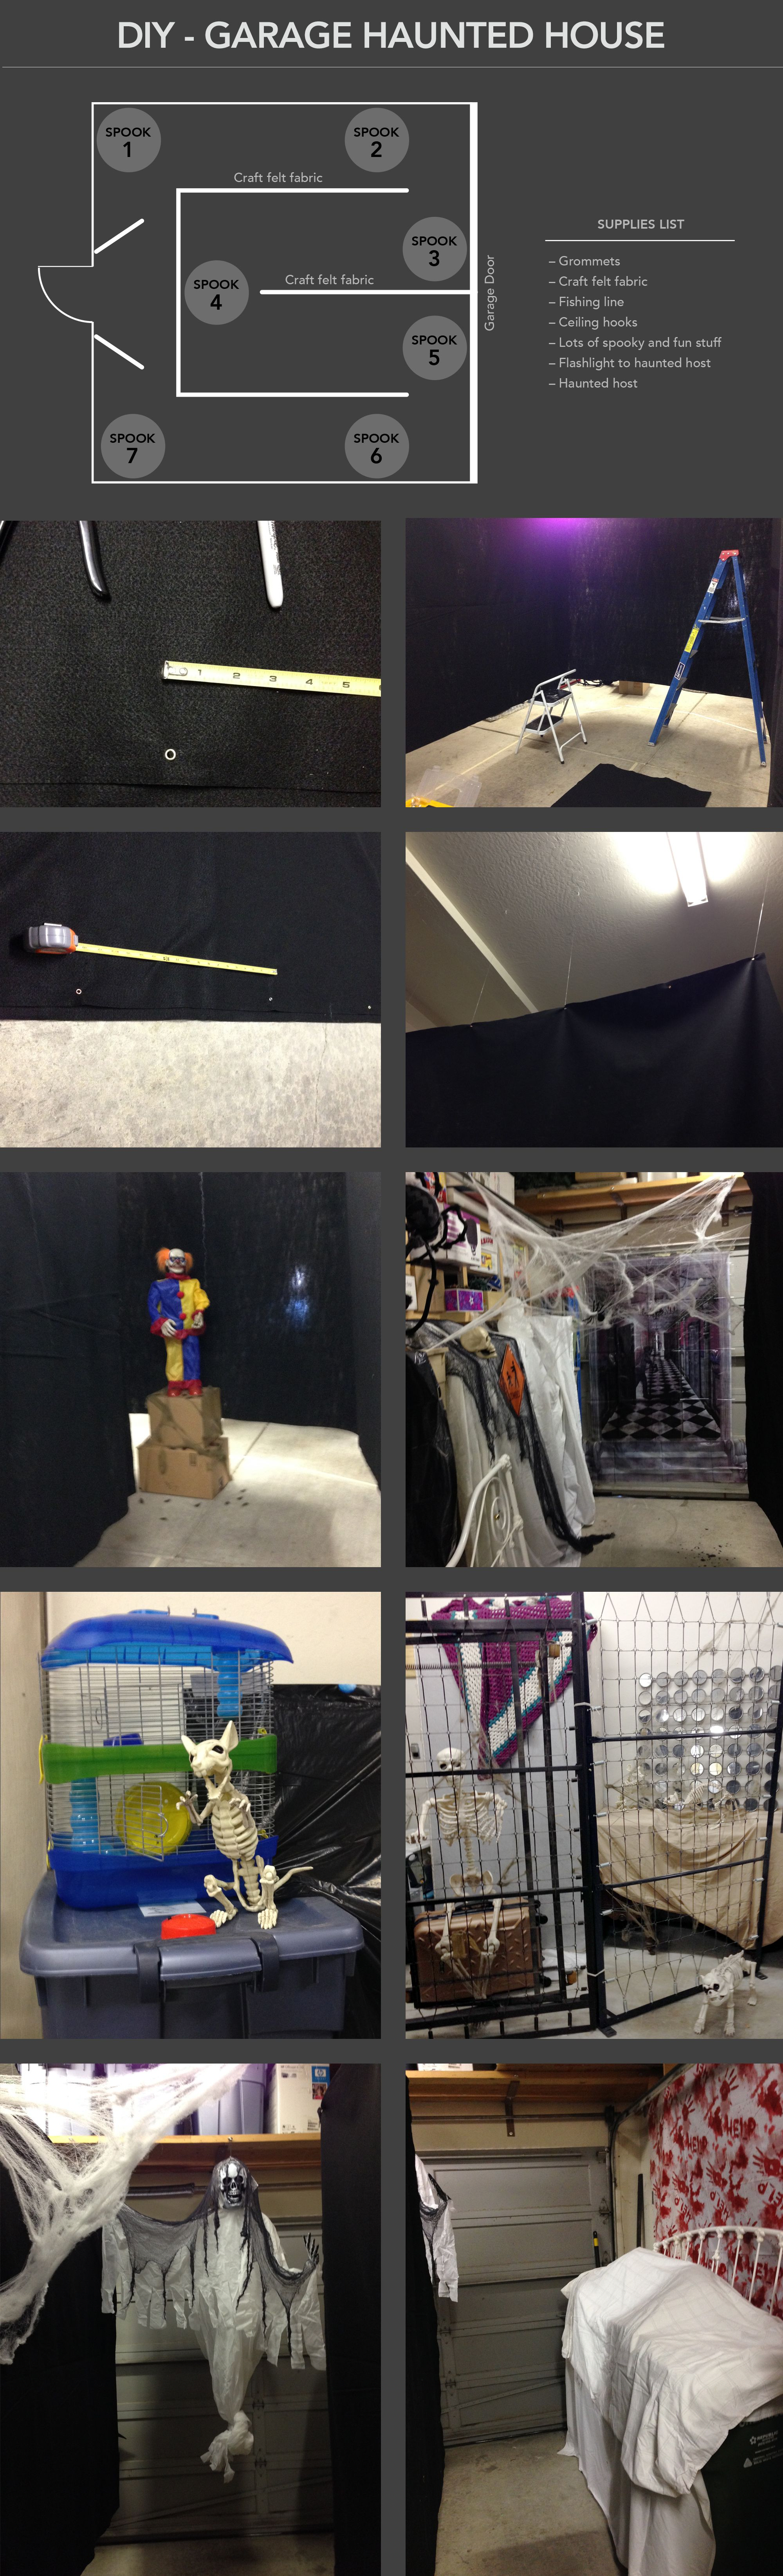 Diy Garage Haunted House For Halloween With Images Halloween